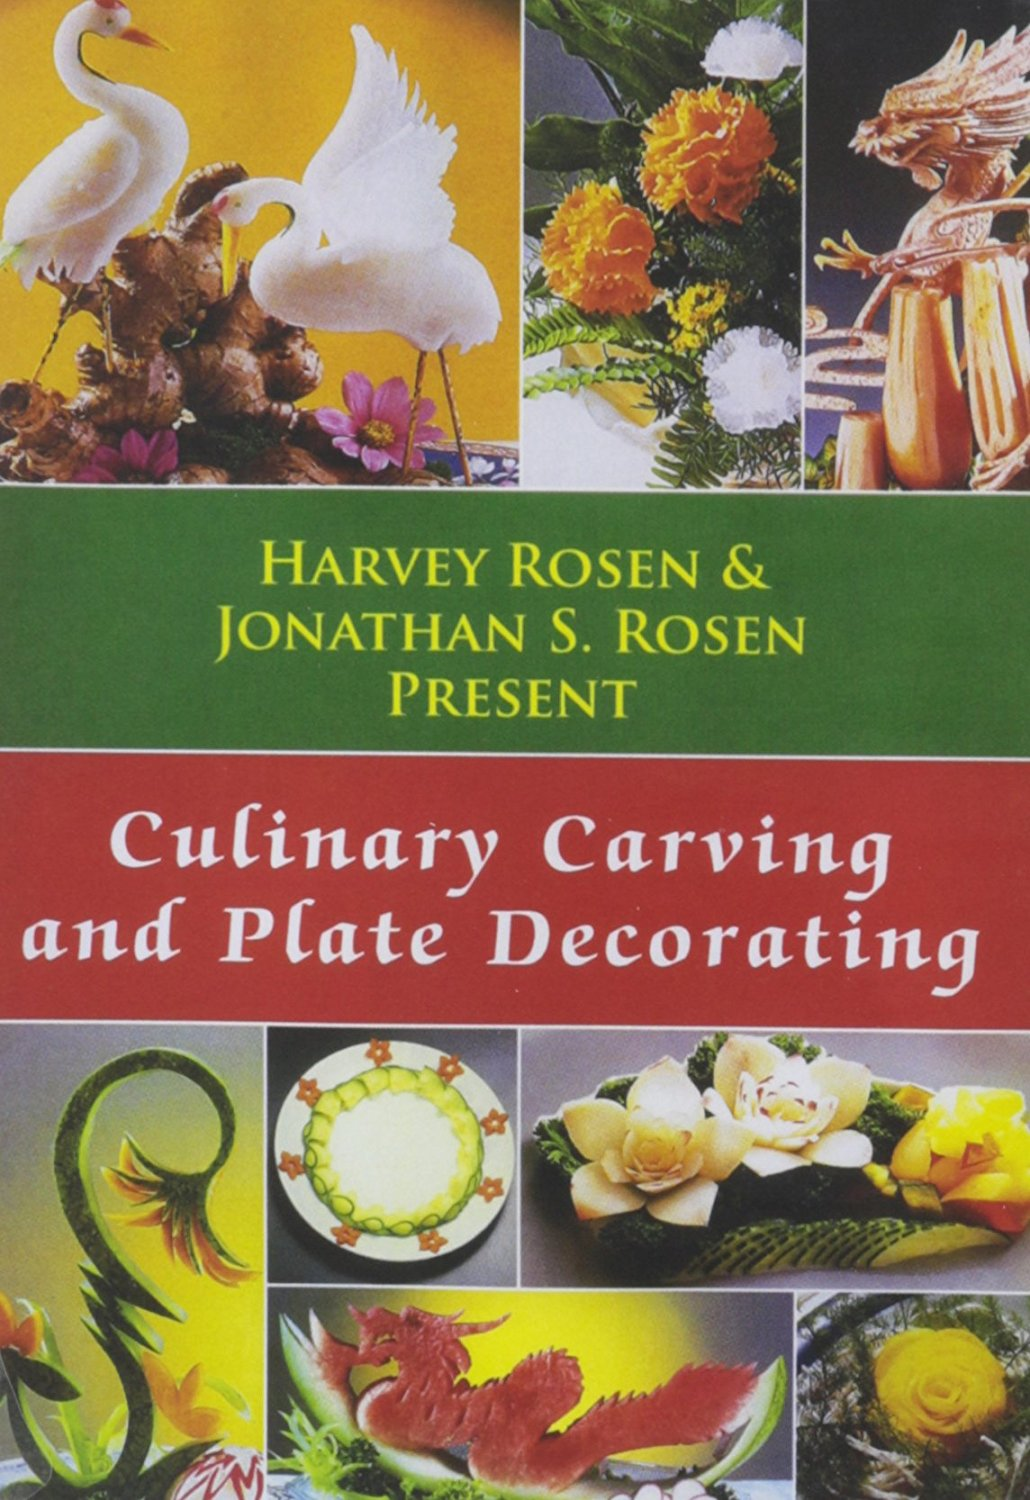 Culinary Carving and Plate Decorating